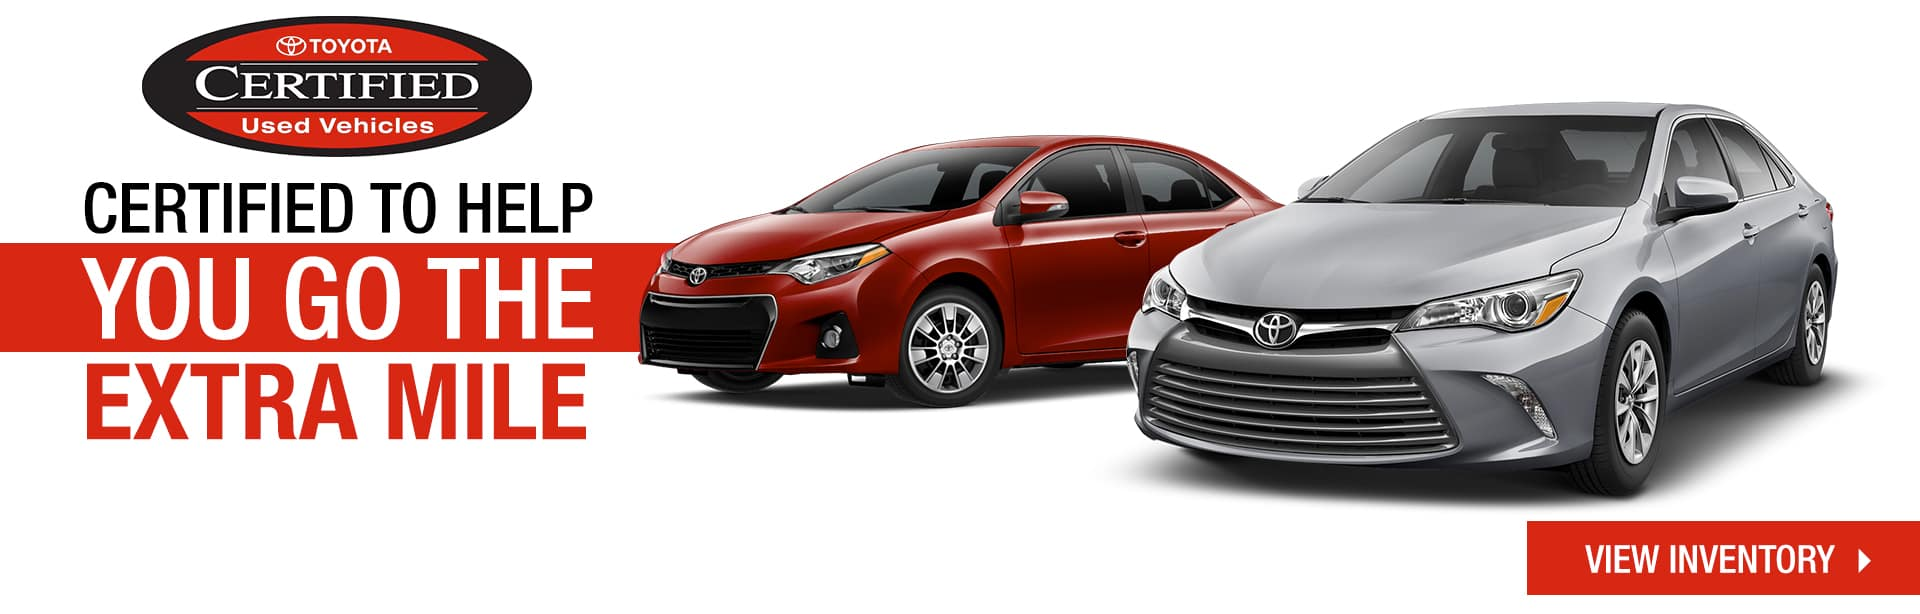 Certified To Help You Go The Extra Mile | Toyota Certified Used Vehicles